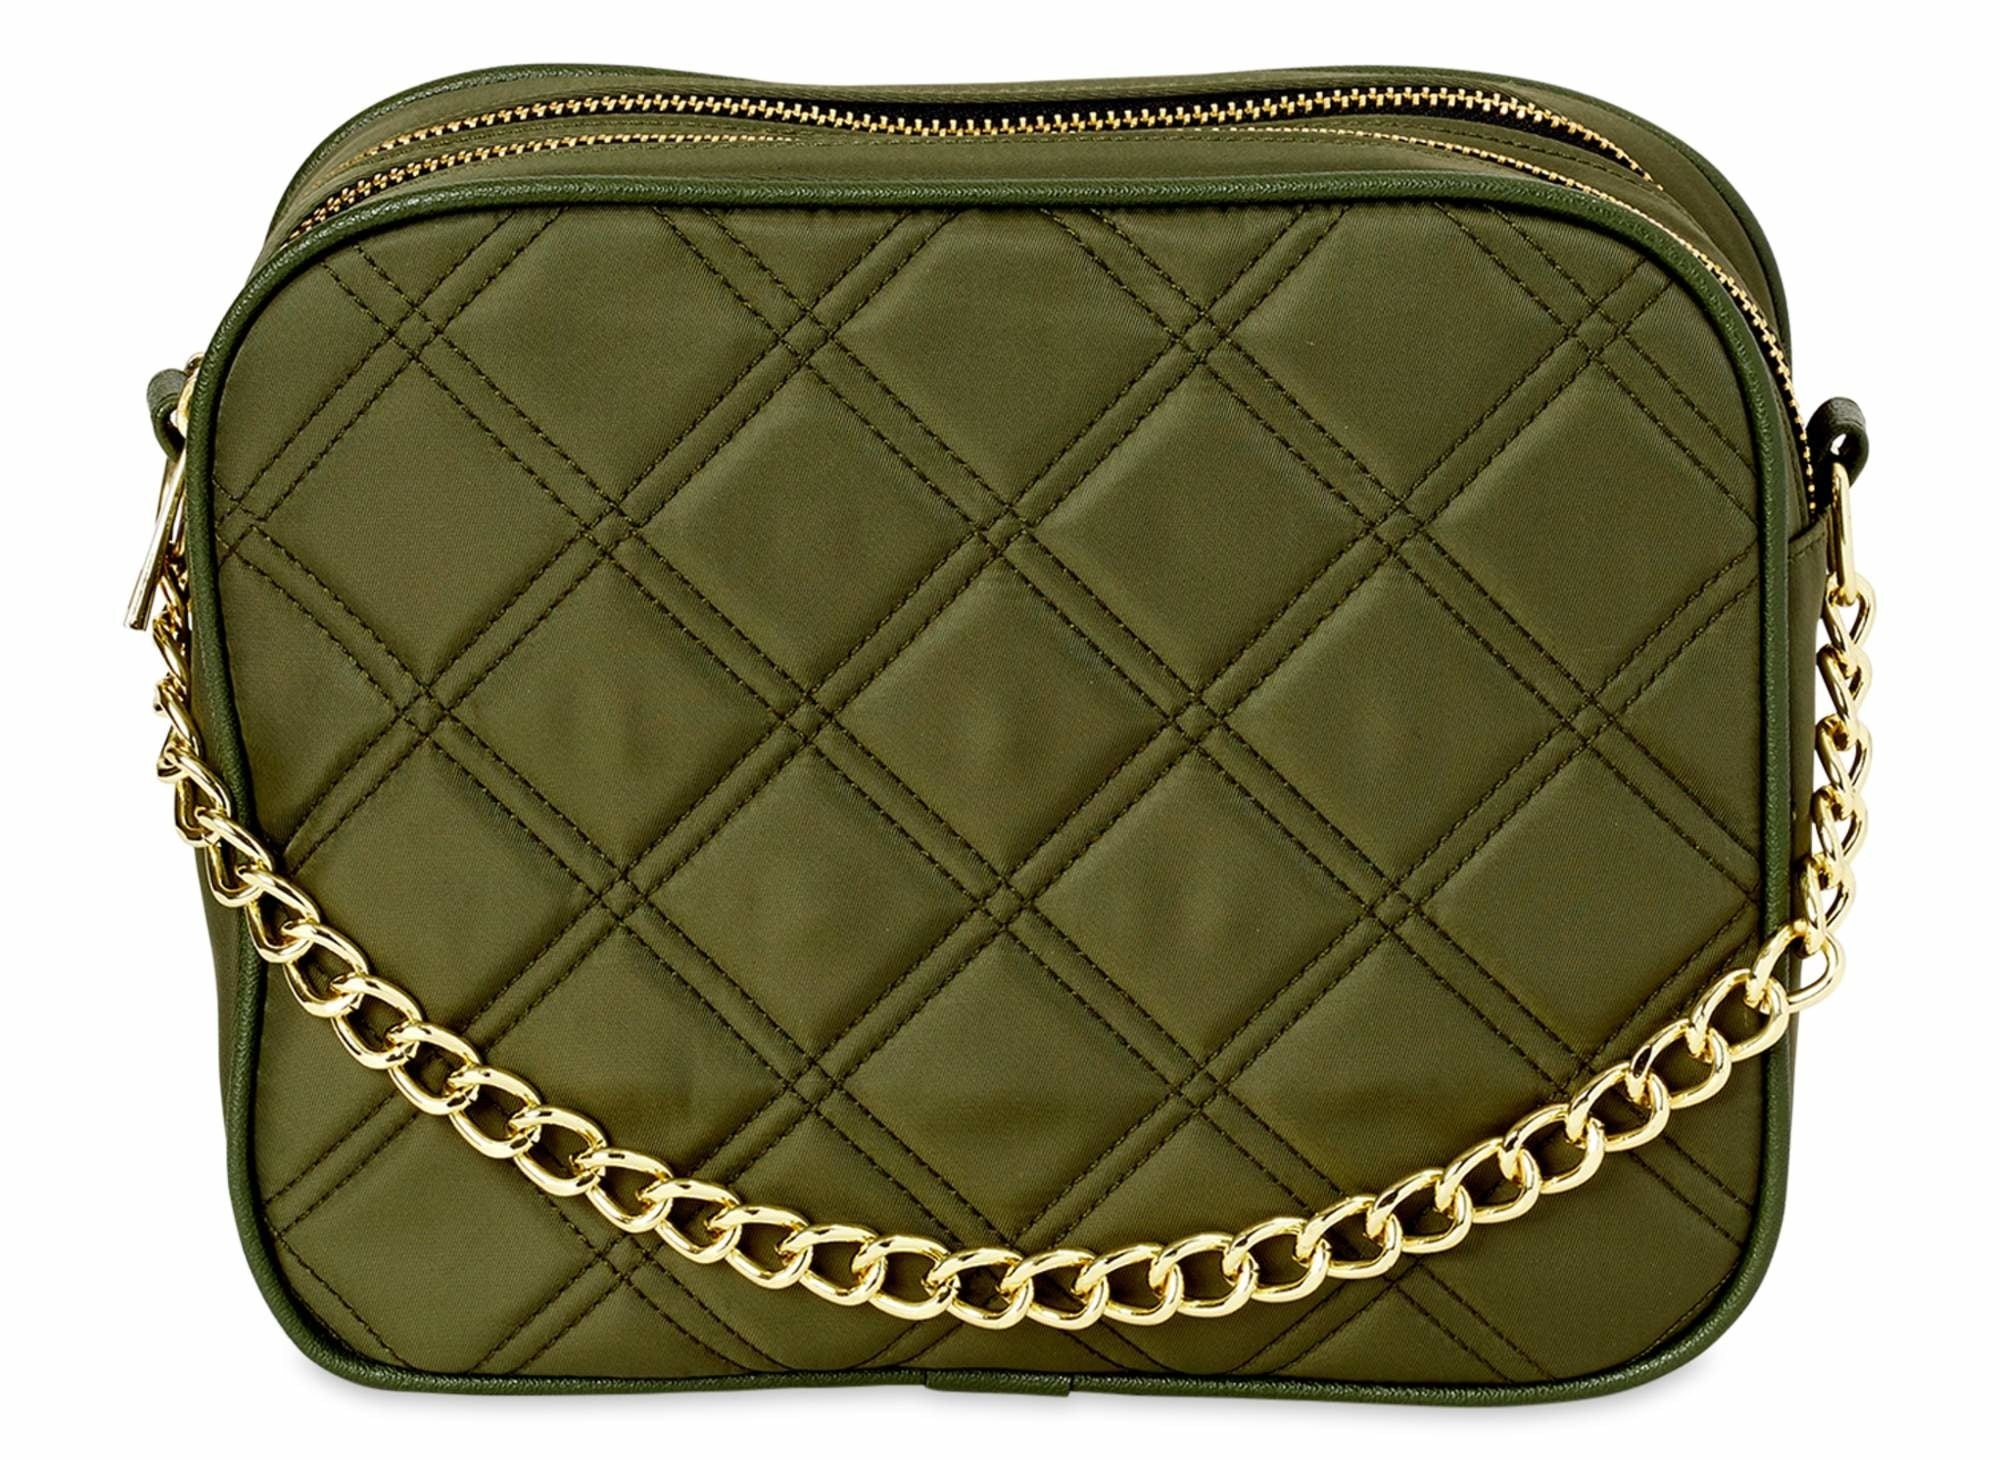 The bag in olive green